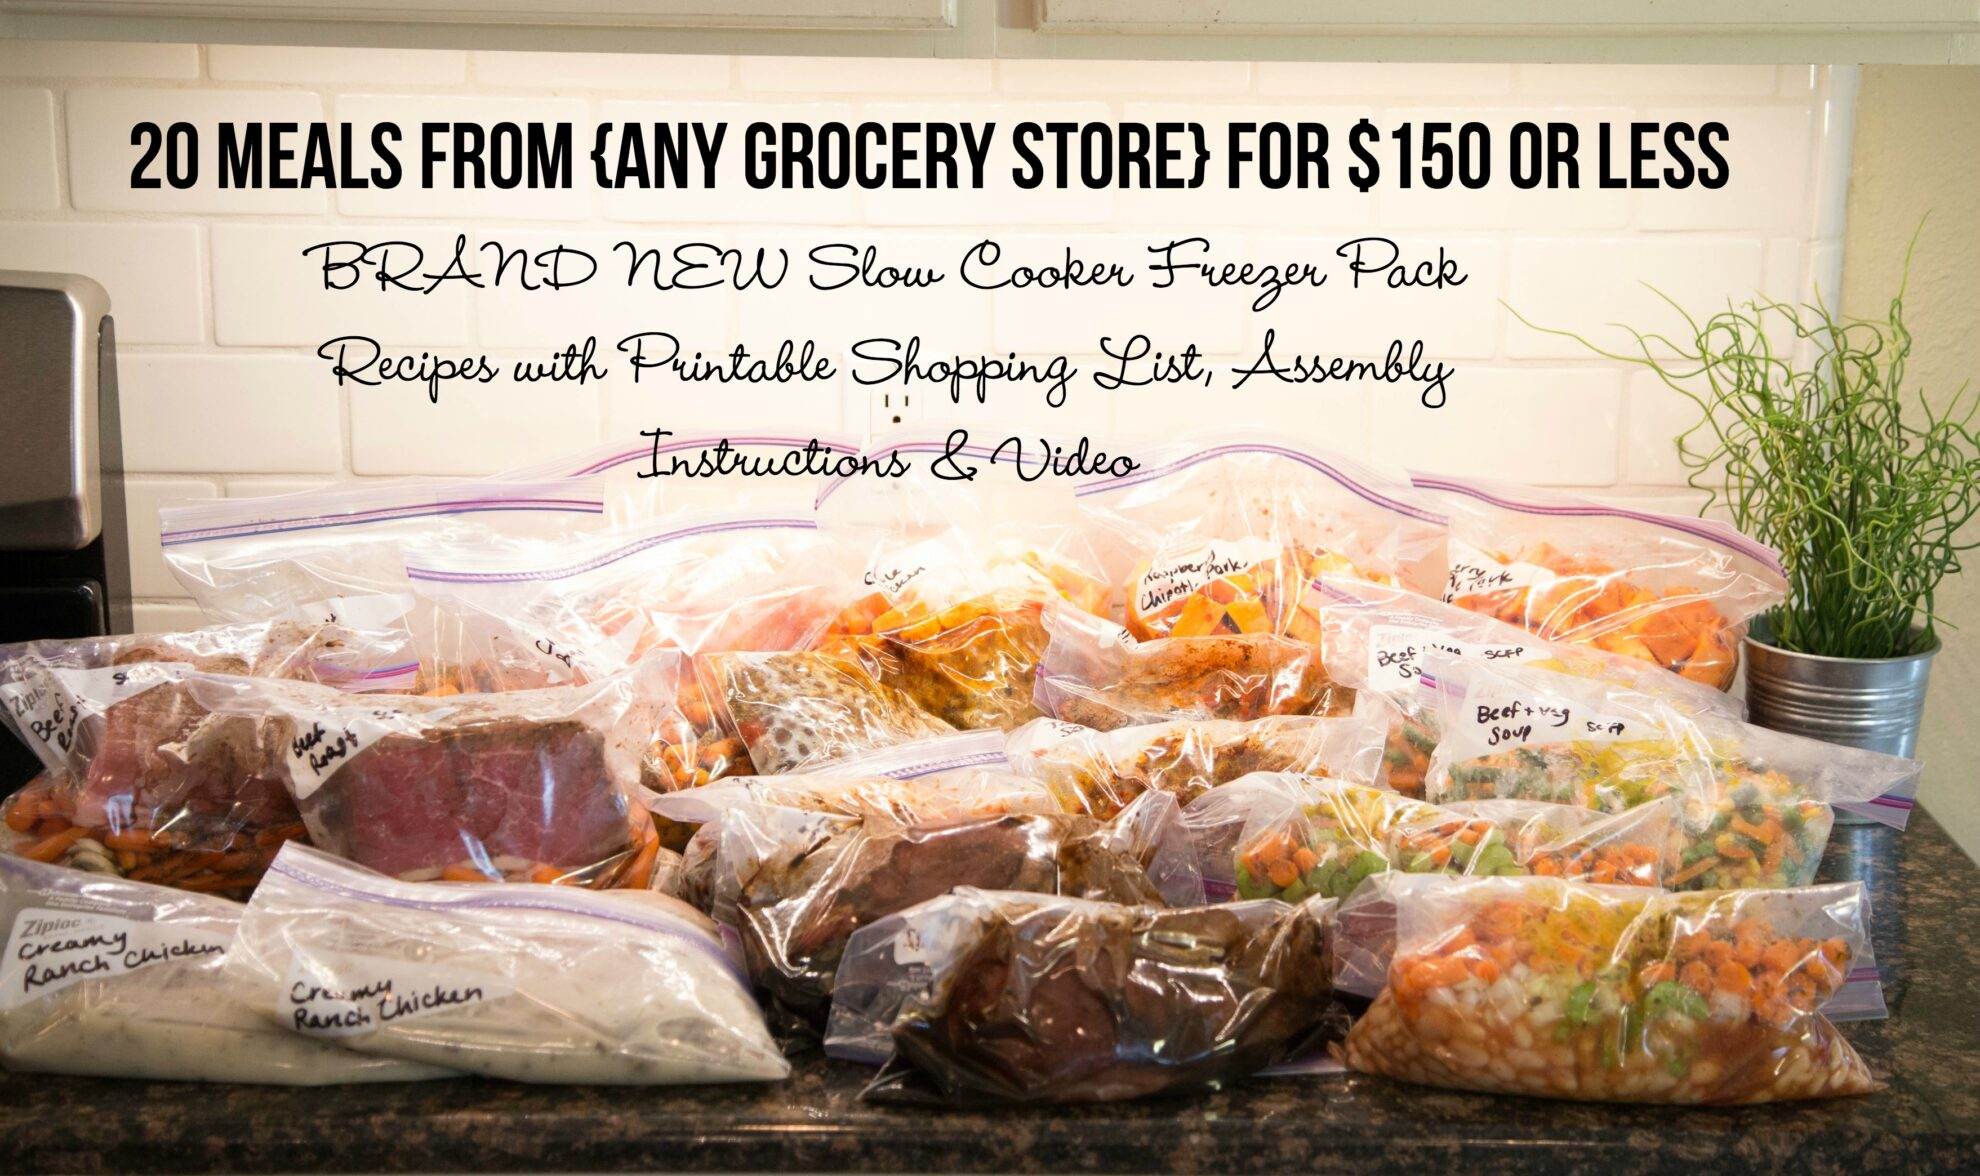 Any Grocery Store - 20 Meals for $150